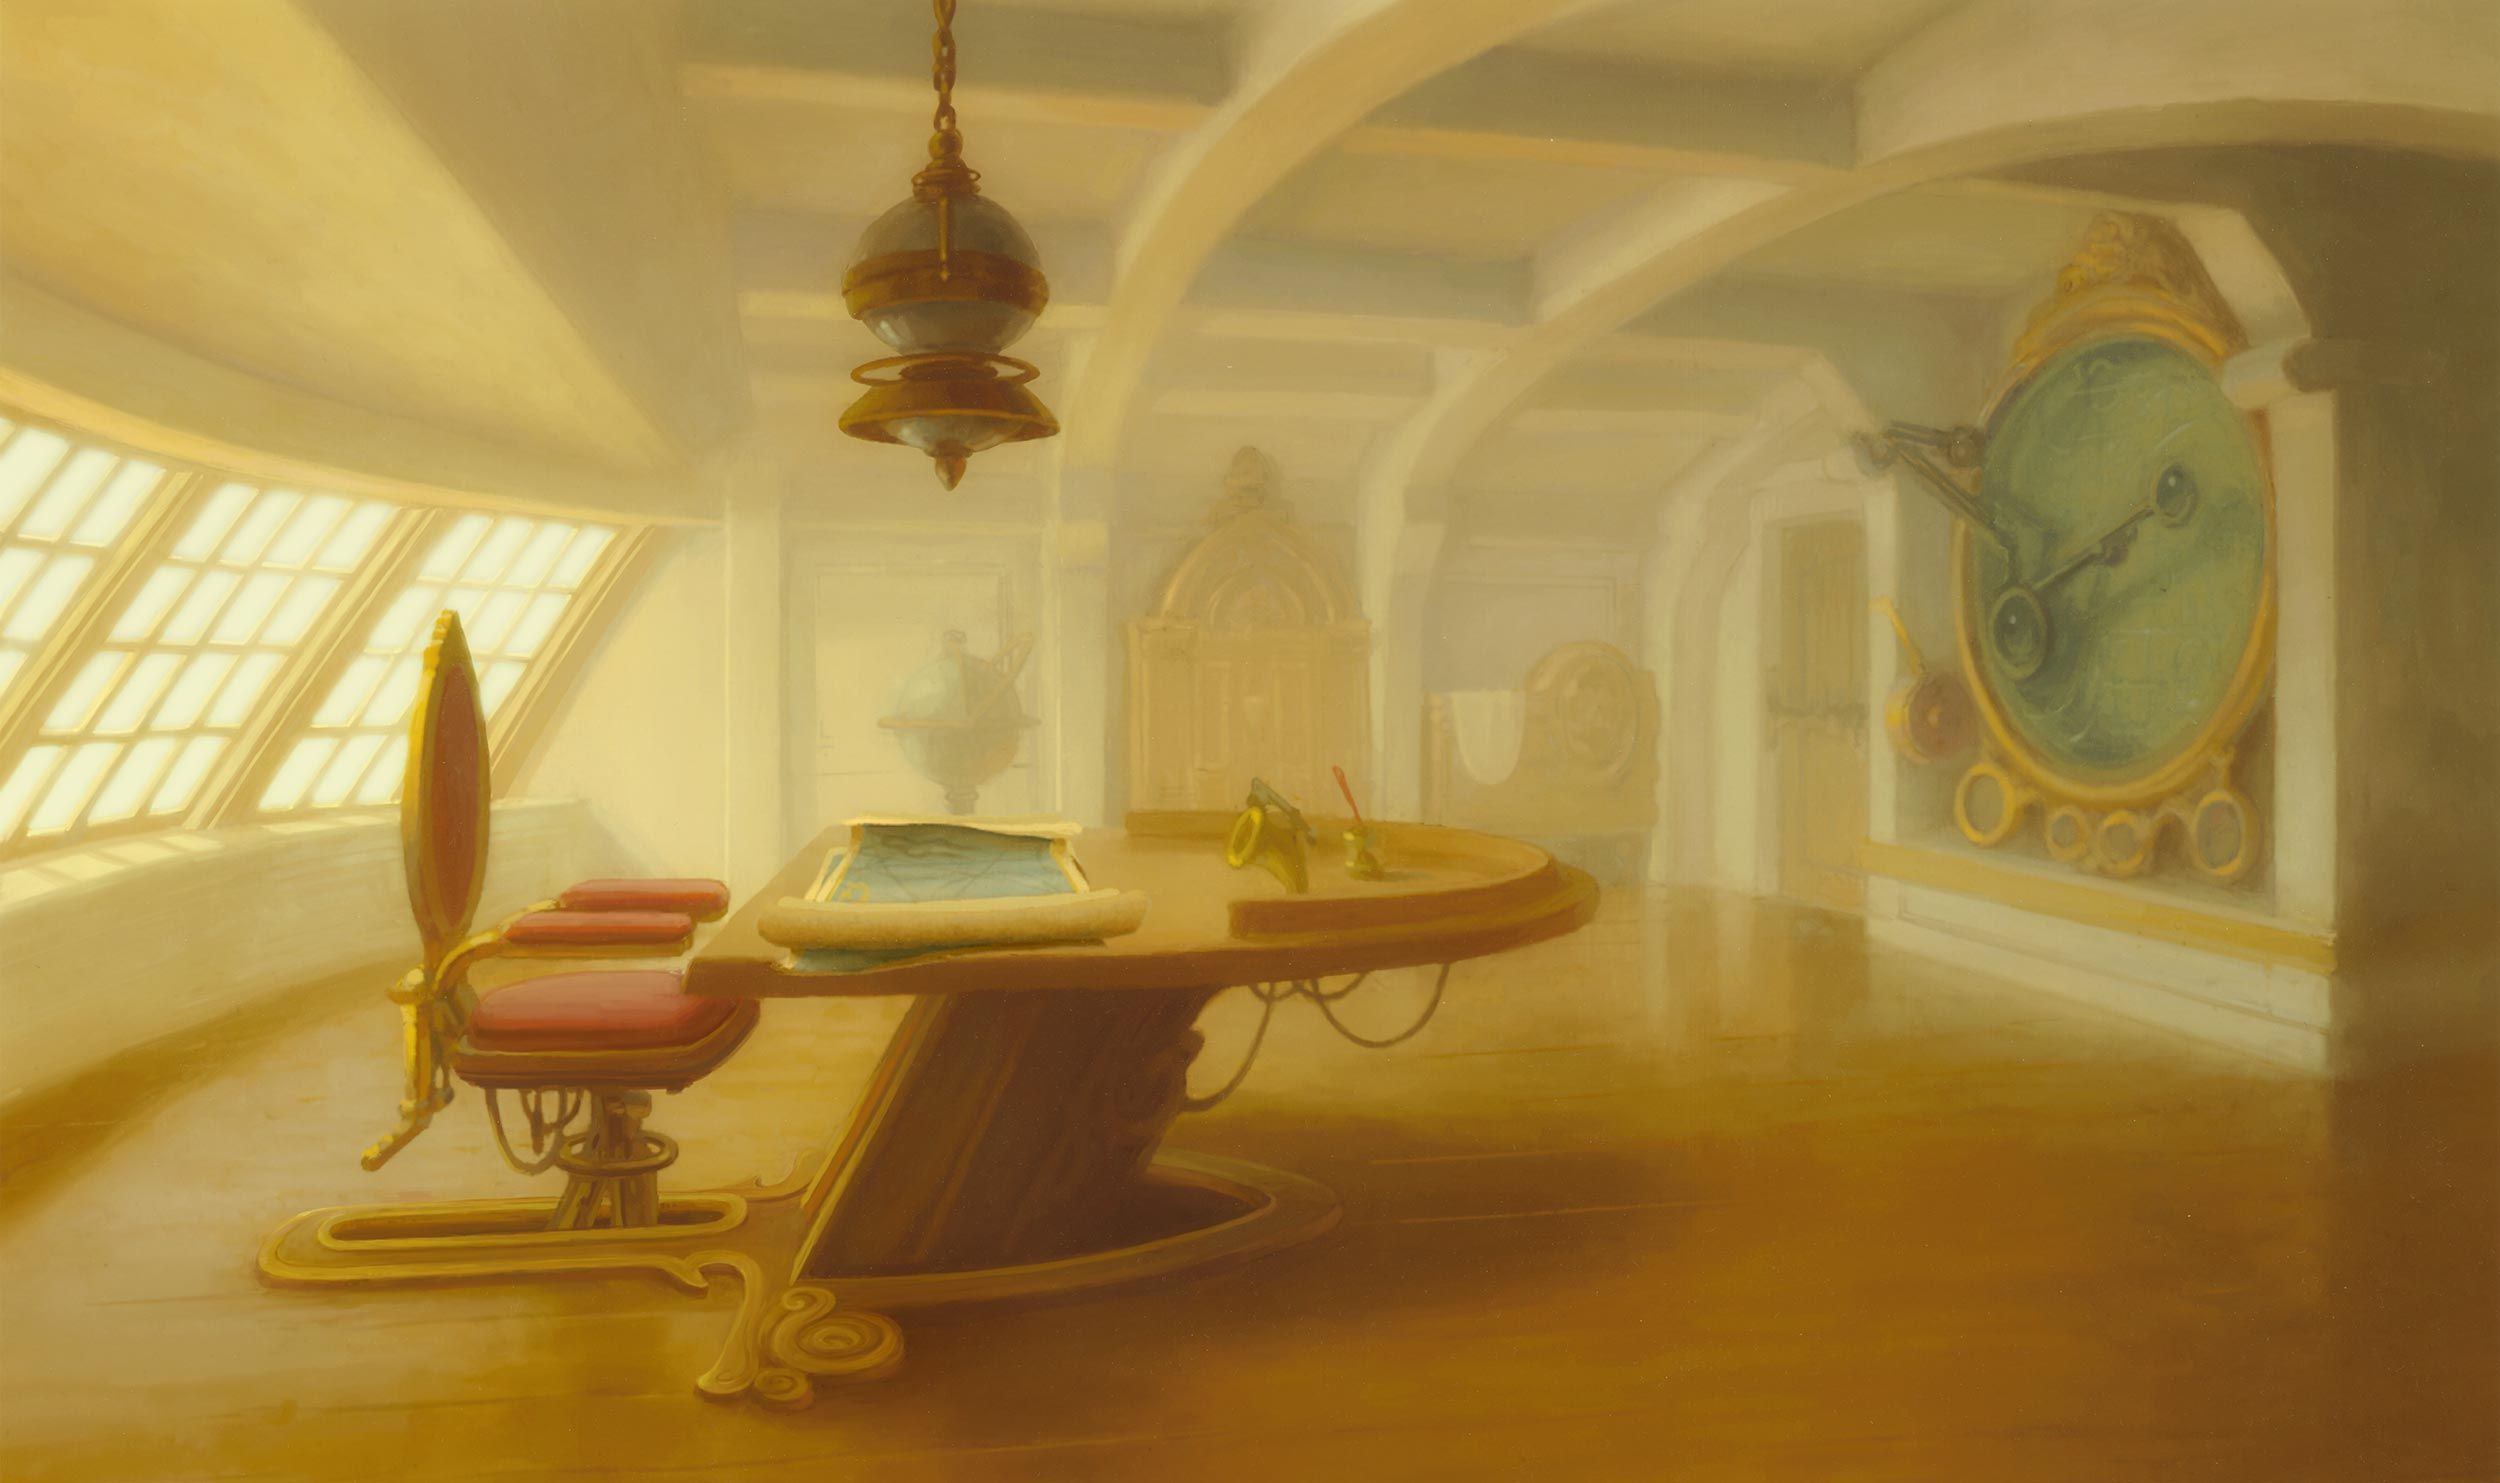 Digitally painted in Disney's Digpaint software. Copyright © 2002 Disney